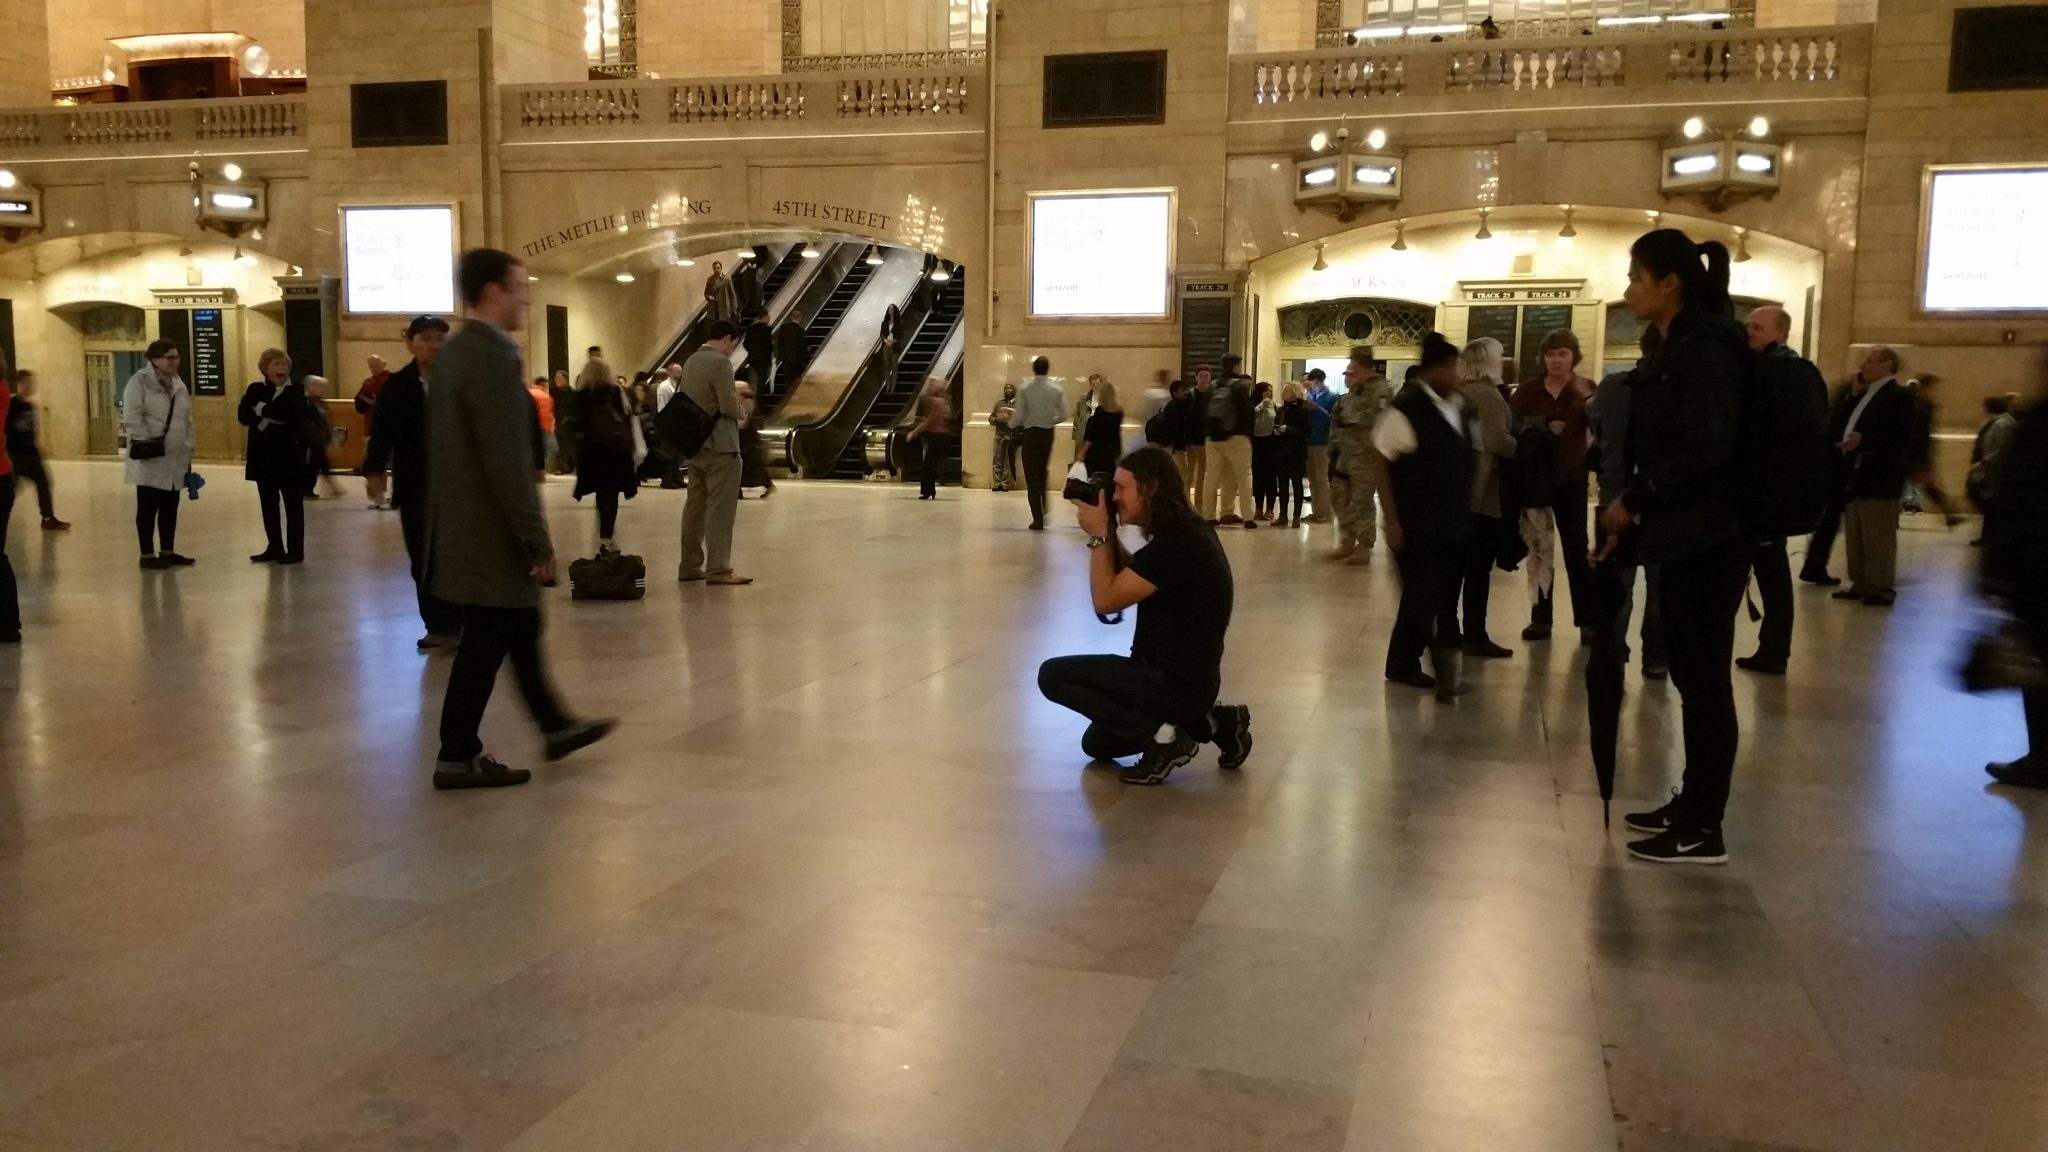 Christie H_periscope story_grand central in NY